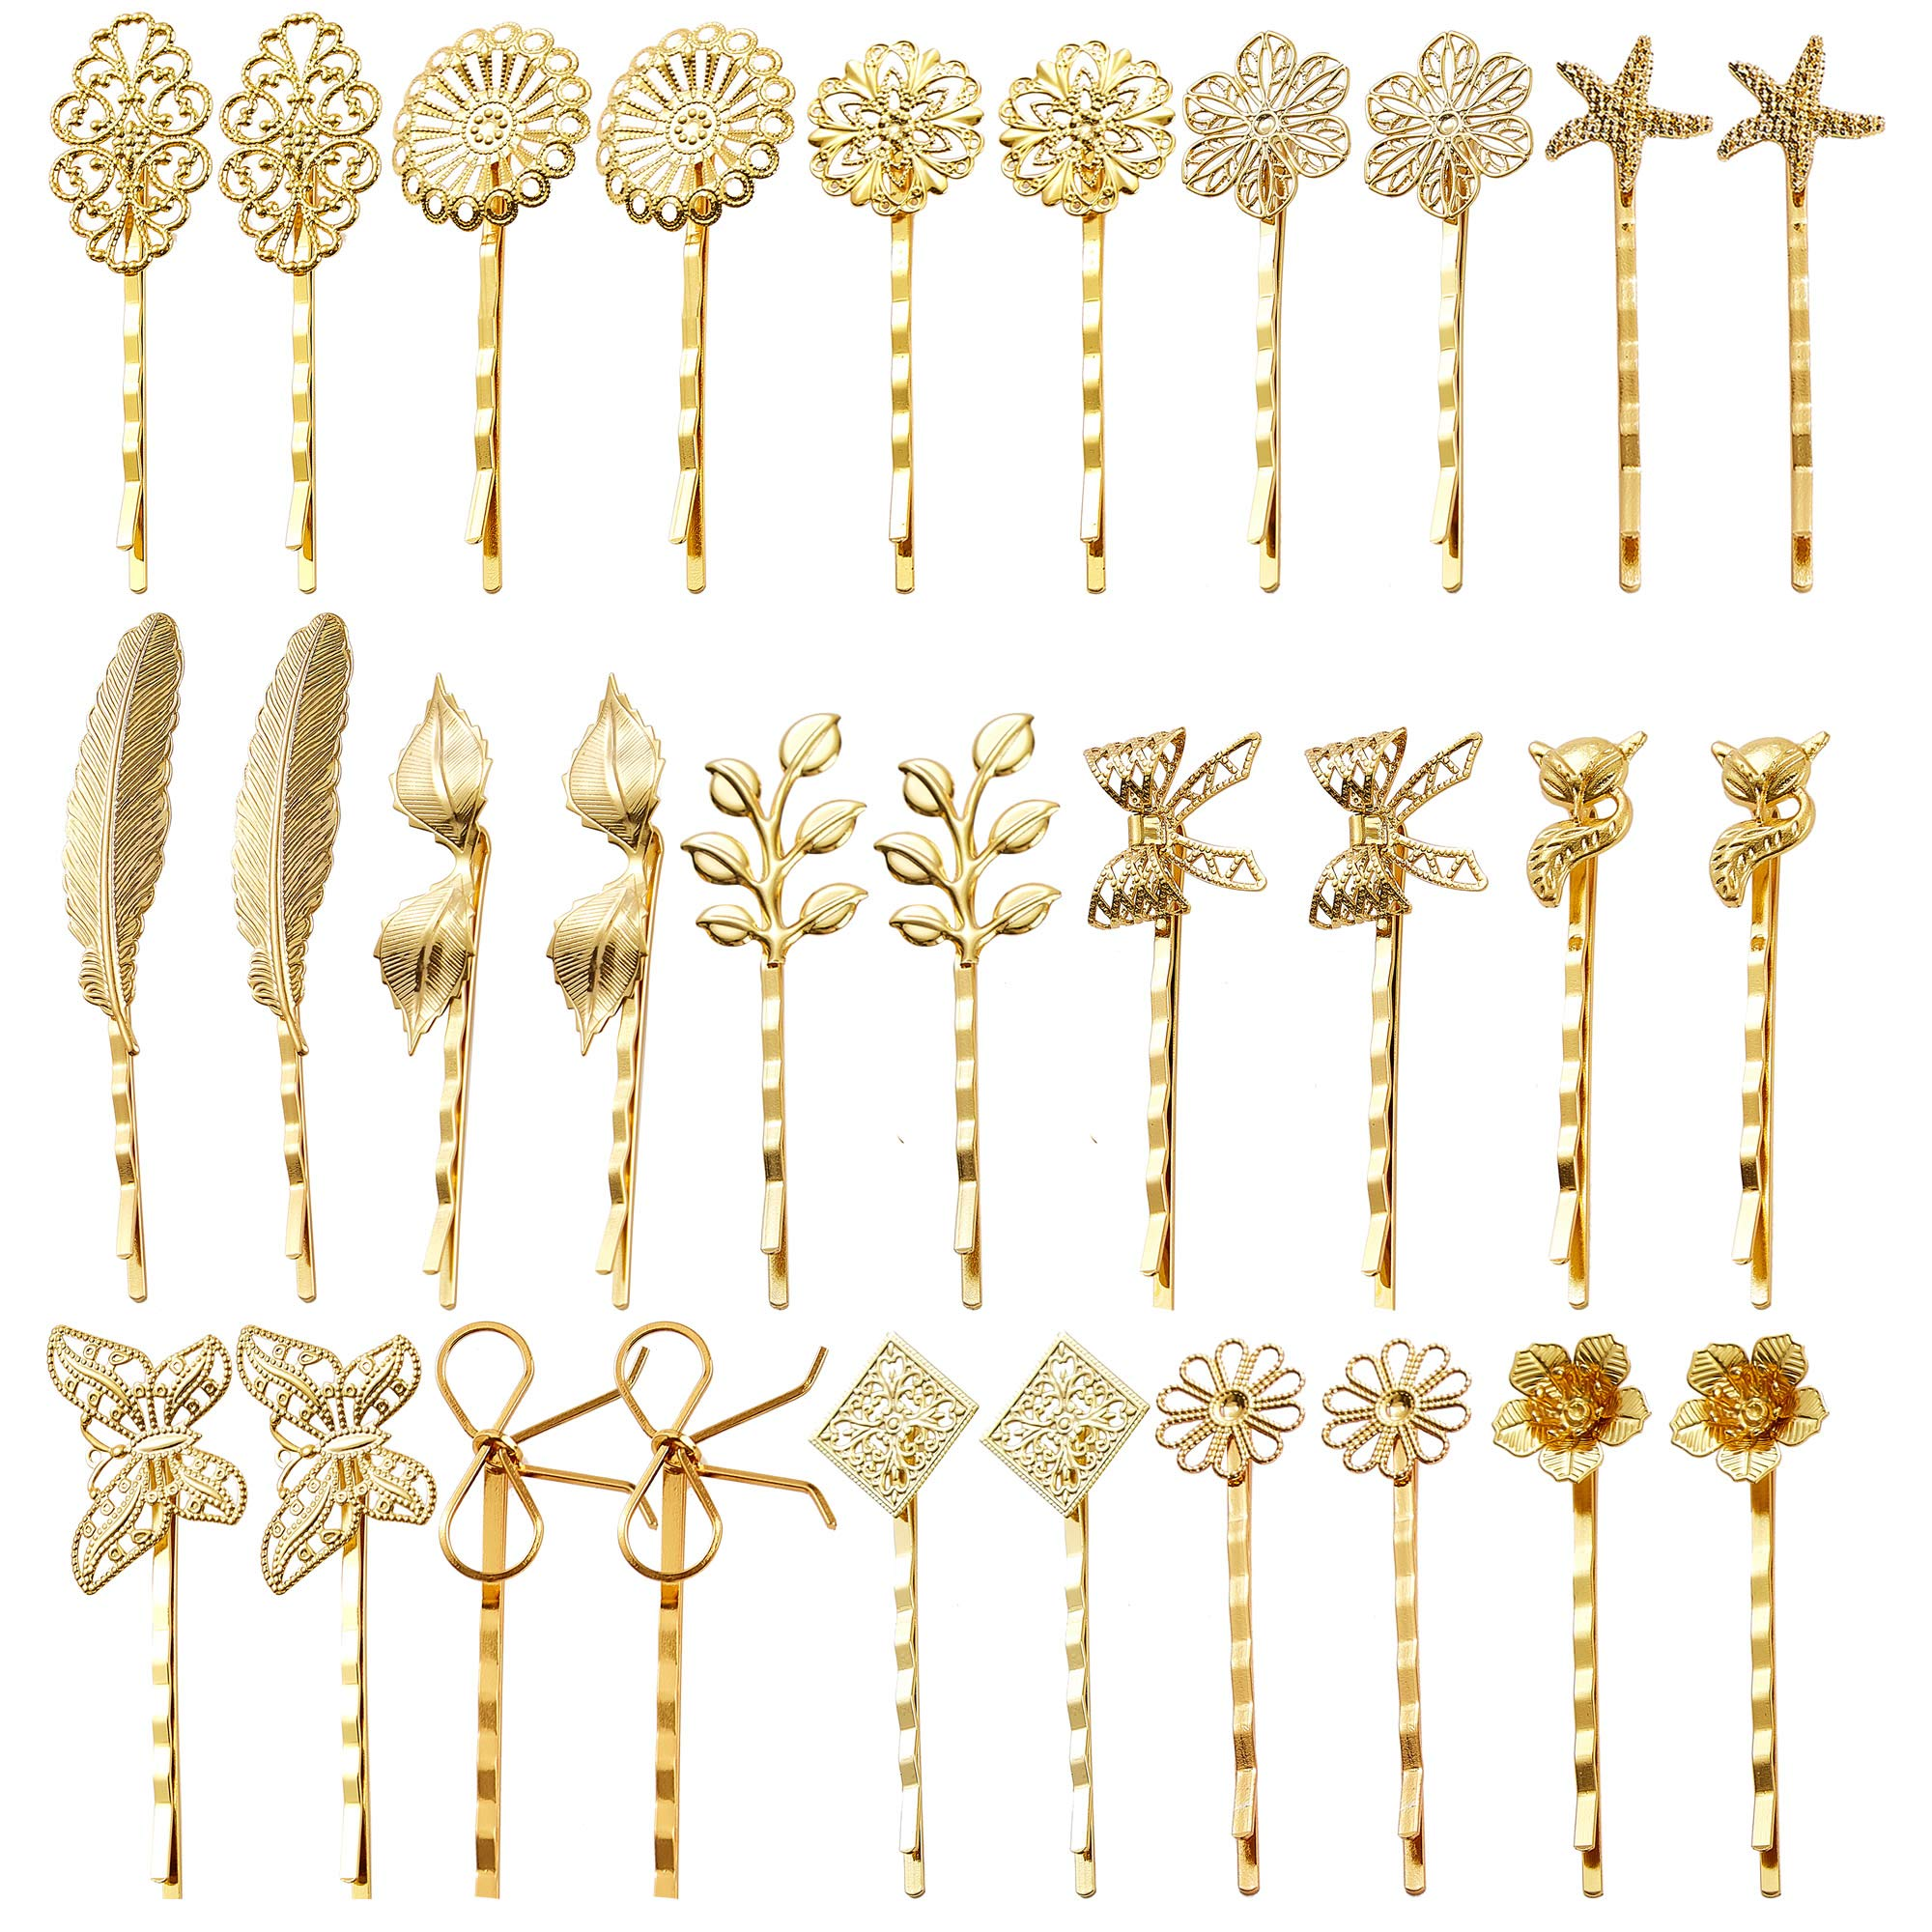 inSowni 30 Pack/15 Pairs Gold Retro Vintage Metal Bobby Pins Hair Clips Barrettes Accessories Leaf Bow Flower Butterfly for Women Girls